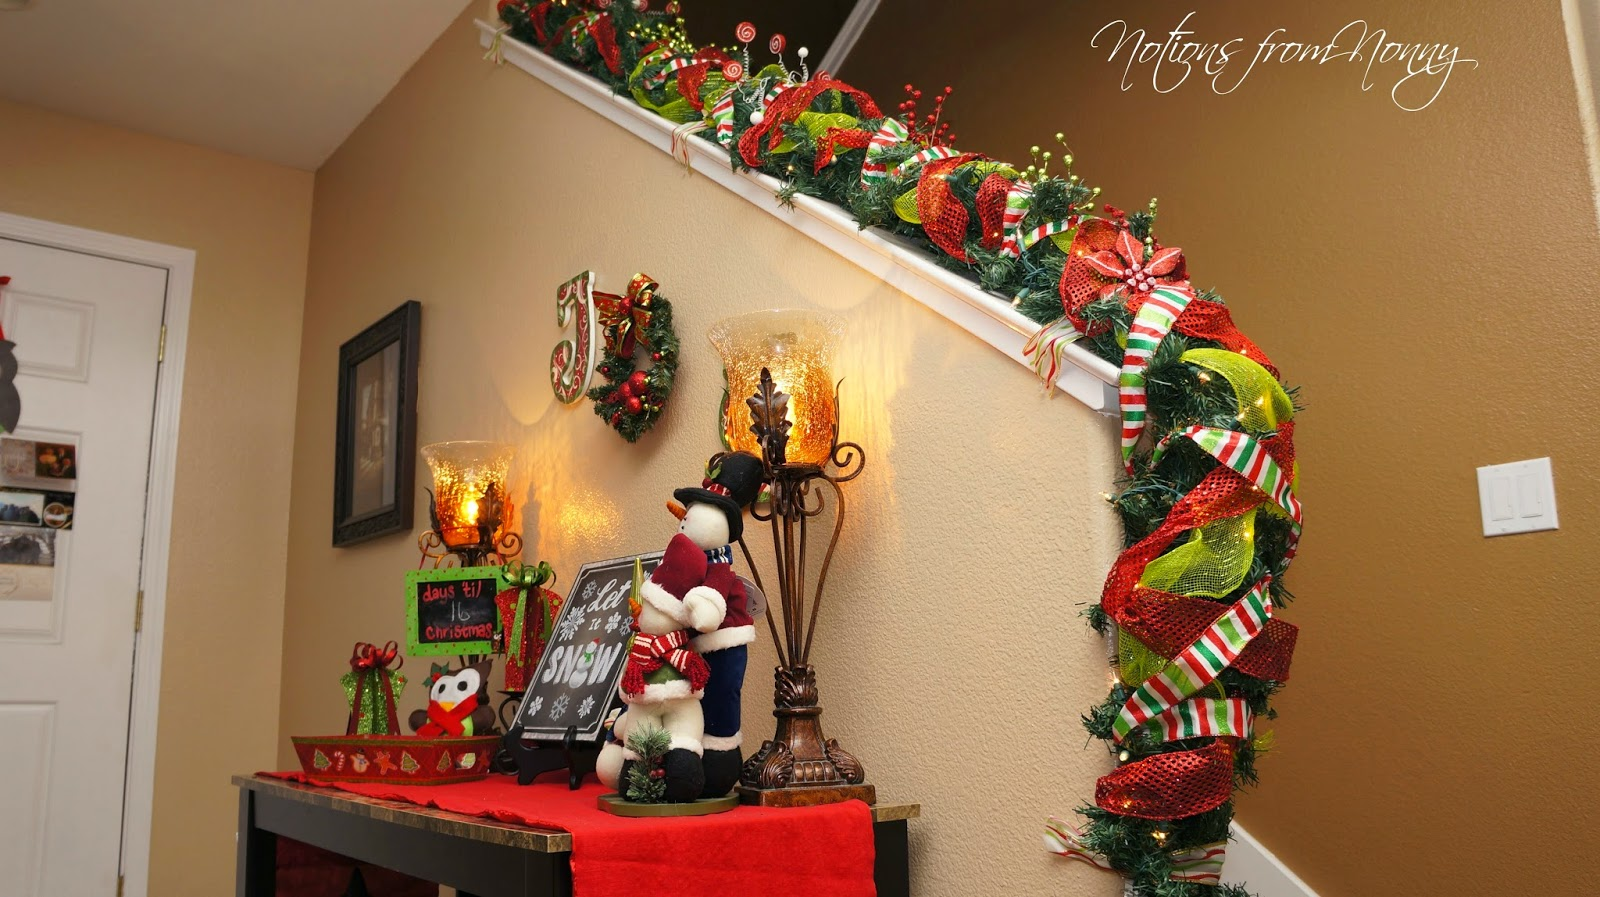 Decorating banisters for christmas with ribbon - It Is The Hardest Banister I Have Ever Had To Decorate So Not To Ruin The Wood I Have Ribbon Carefully Tacked To Hold It Up Thankfully It Stays The Whole